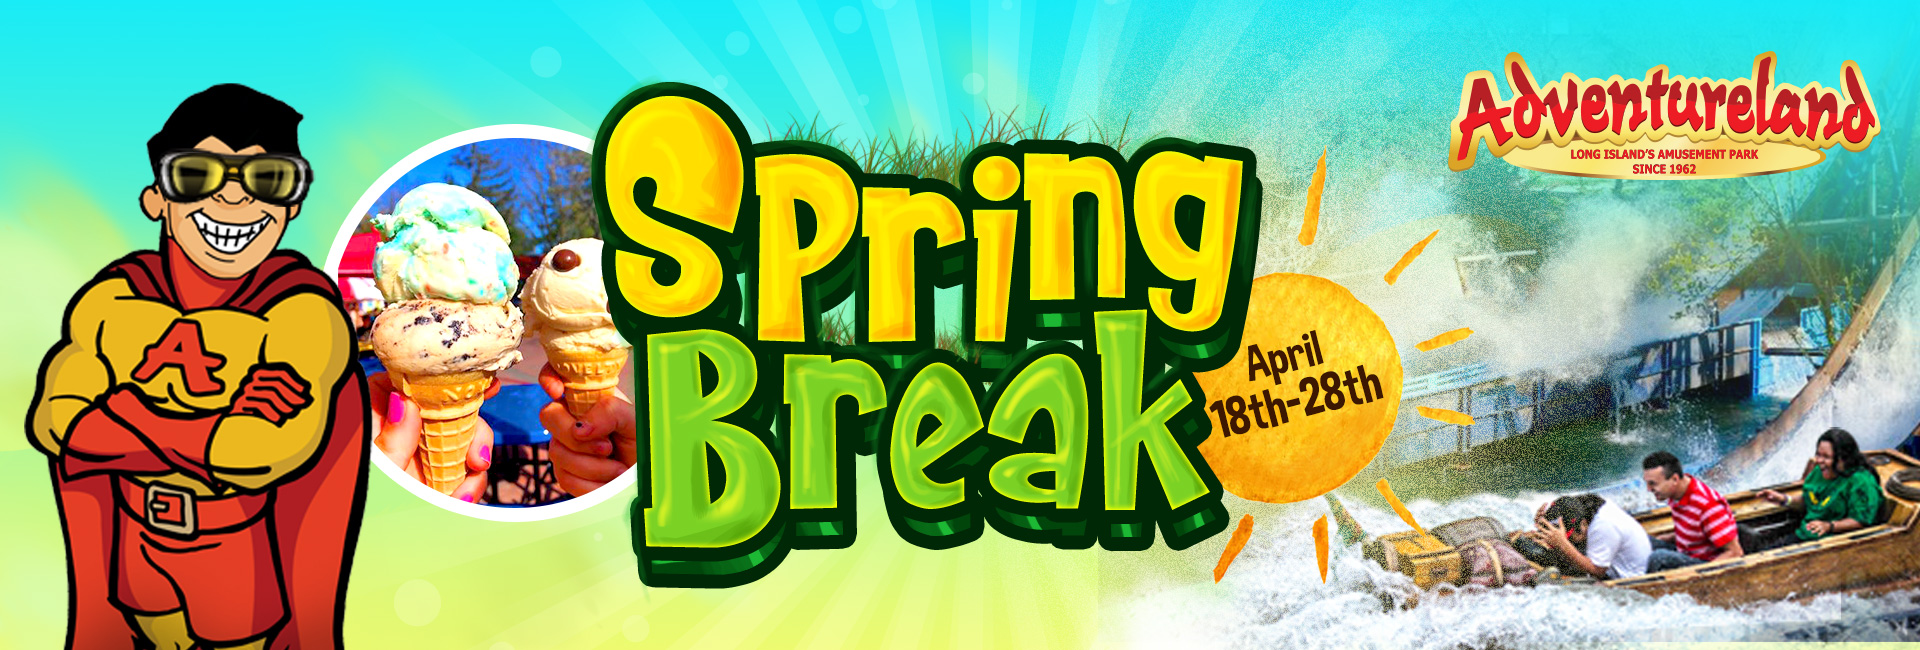 Park open daily for Spring Break April 18th- April 28th